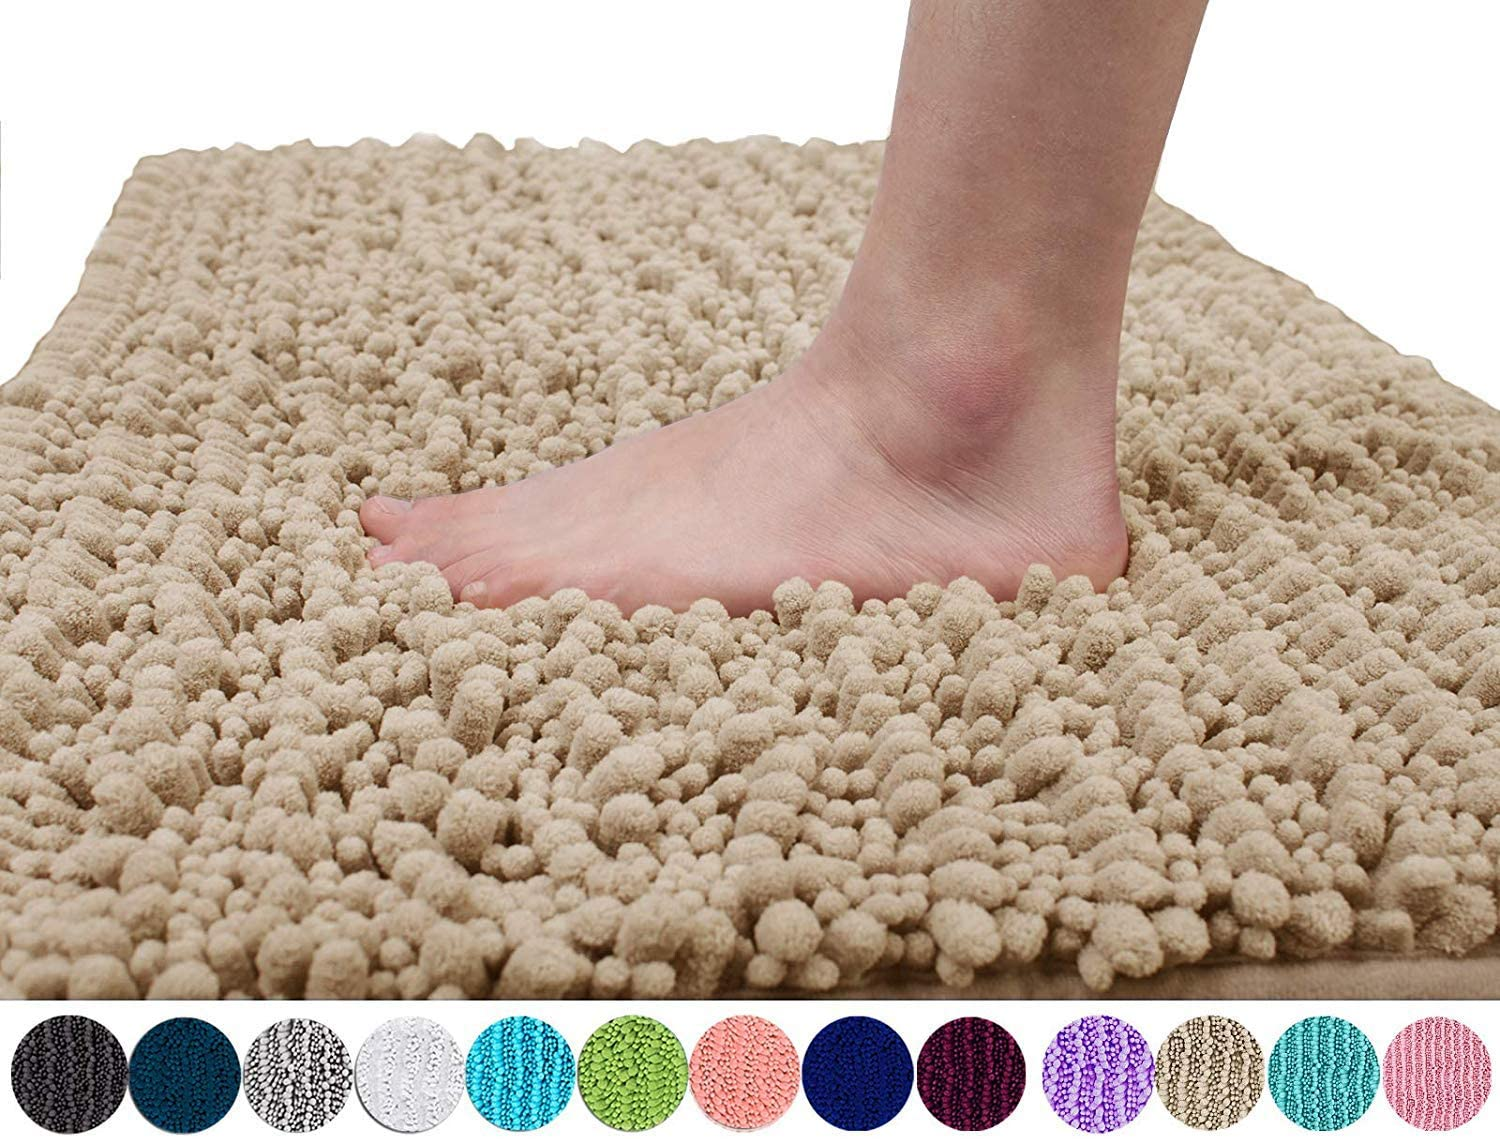 Yimobra Original Luxury Chenille Bath Mat, Soft Shaggy and Comfortable, Large Size, Super Absorbent and Thick, Non-Slip, Machine Washable, Perfect for Bathroom (31.5 X 19.8 Inches, Beige)